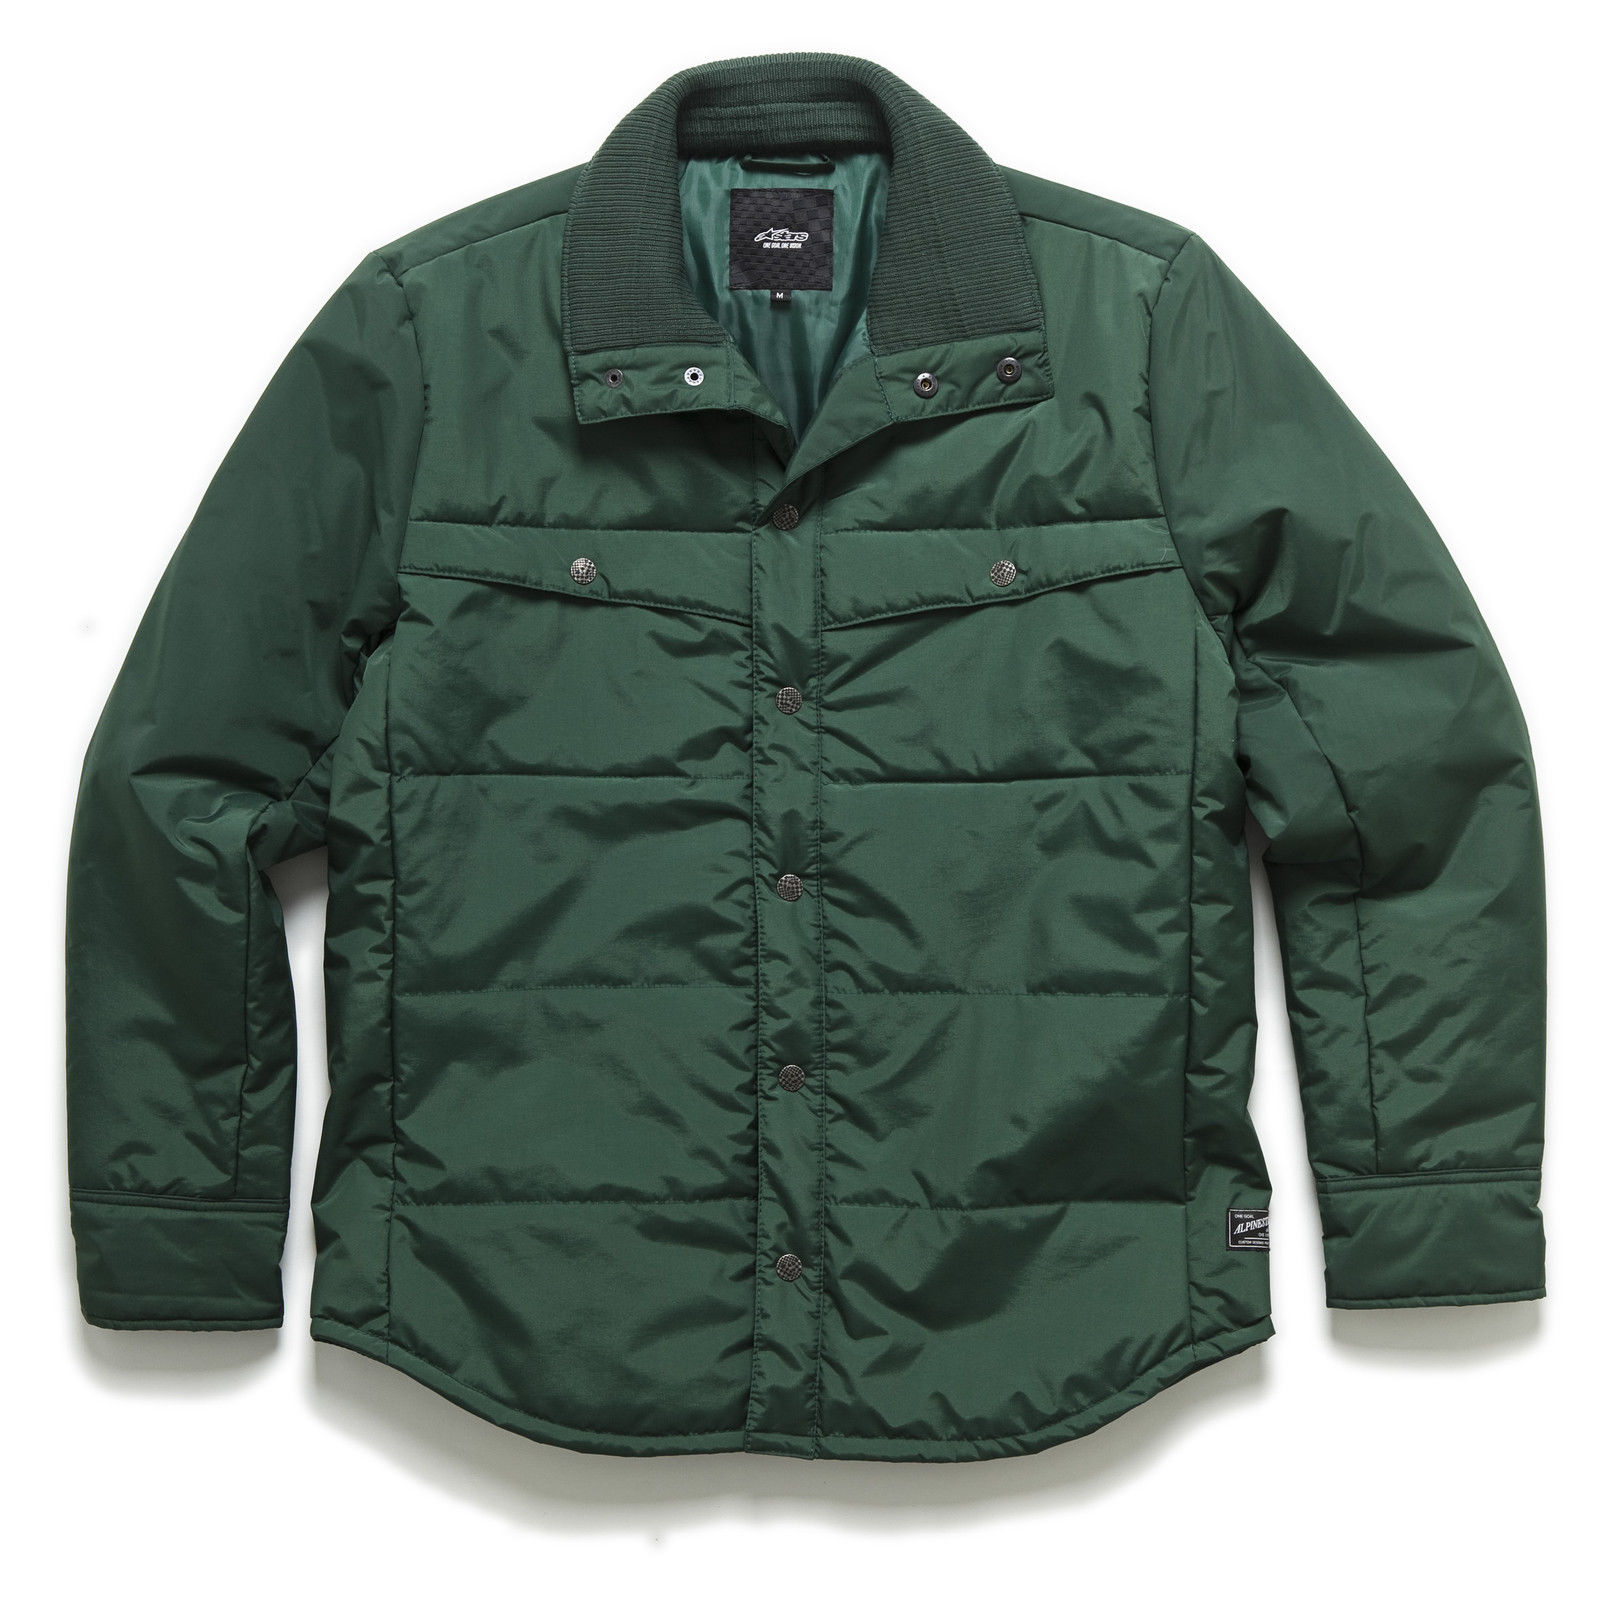 Alpinestars Men's Force Jacket, M, Forest Green